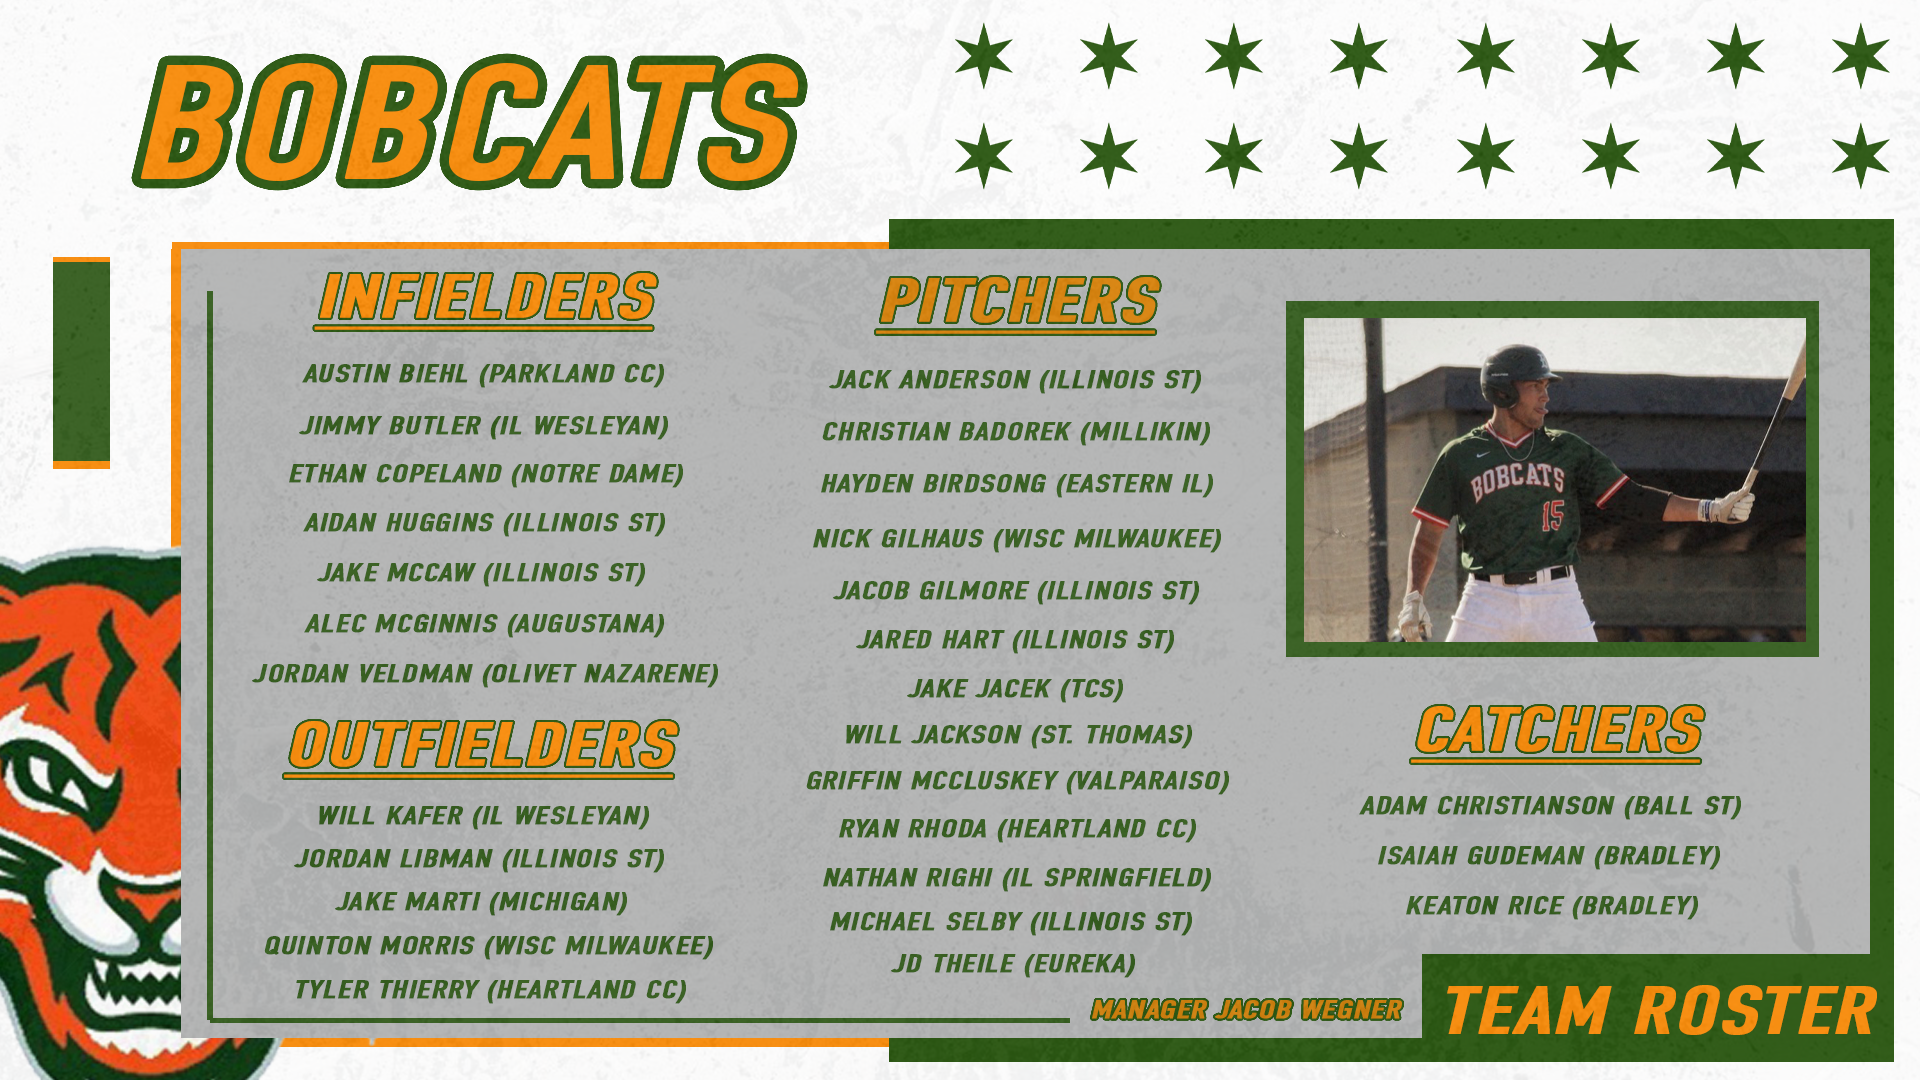 Roster Template - Bobcats